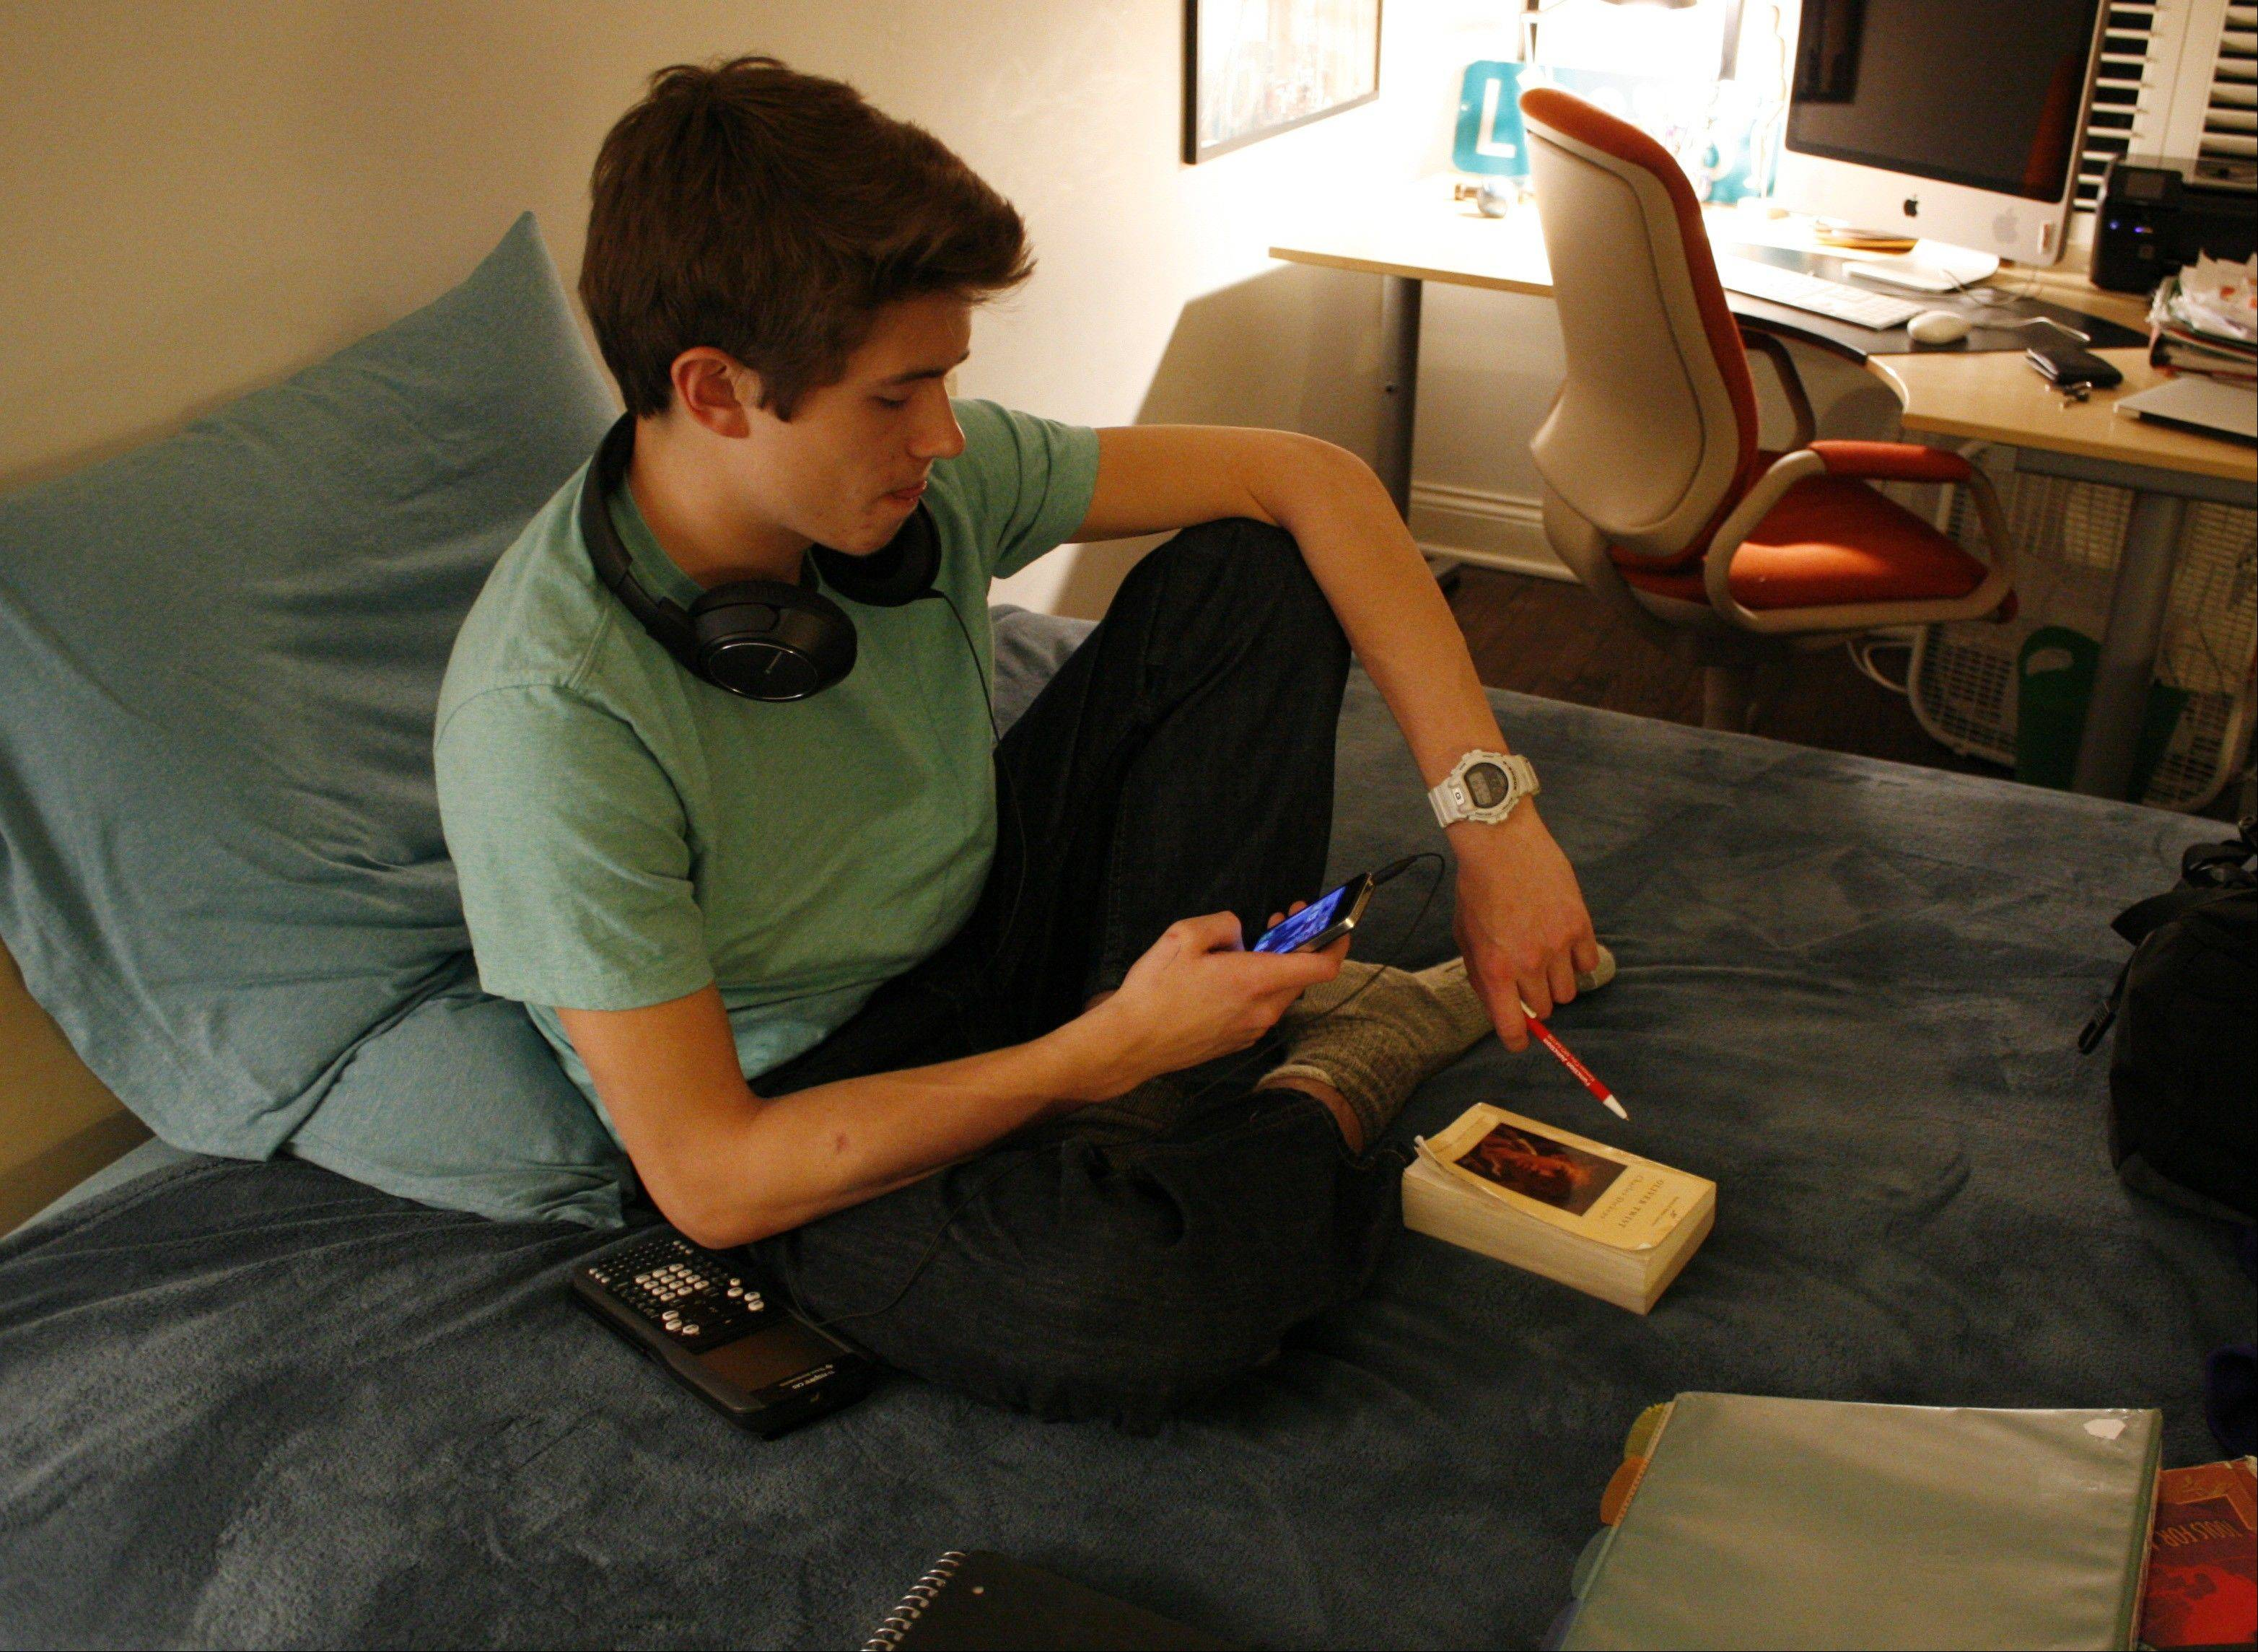 Donald Conkey, 15, checks his smartphone Monday while doing homework in his bedroom in Wilmette. A new report from the Pew Internet & American Life Project says more teens are using smartphones as a main means of accessing the Internet — more so than adults.